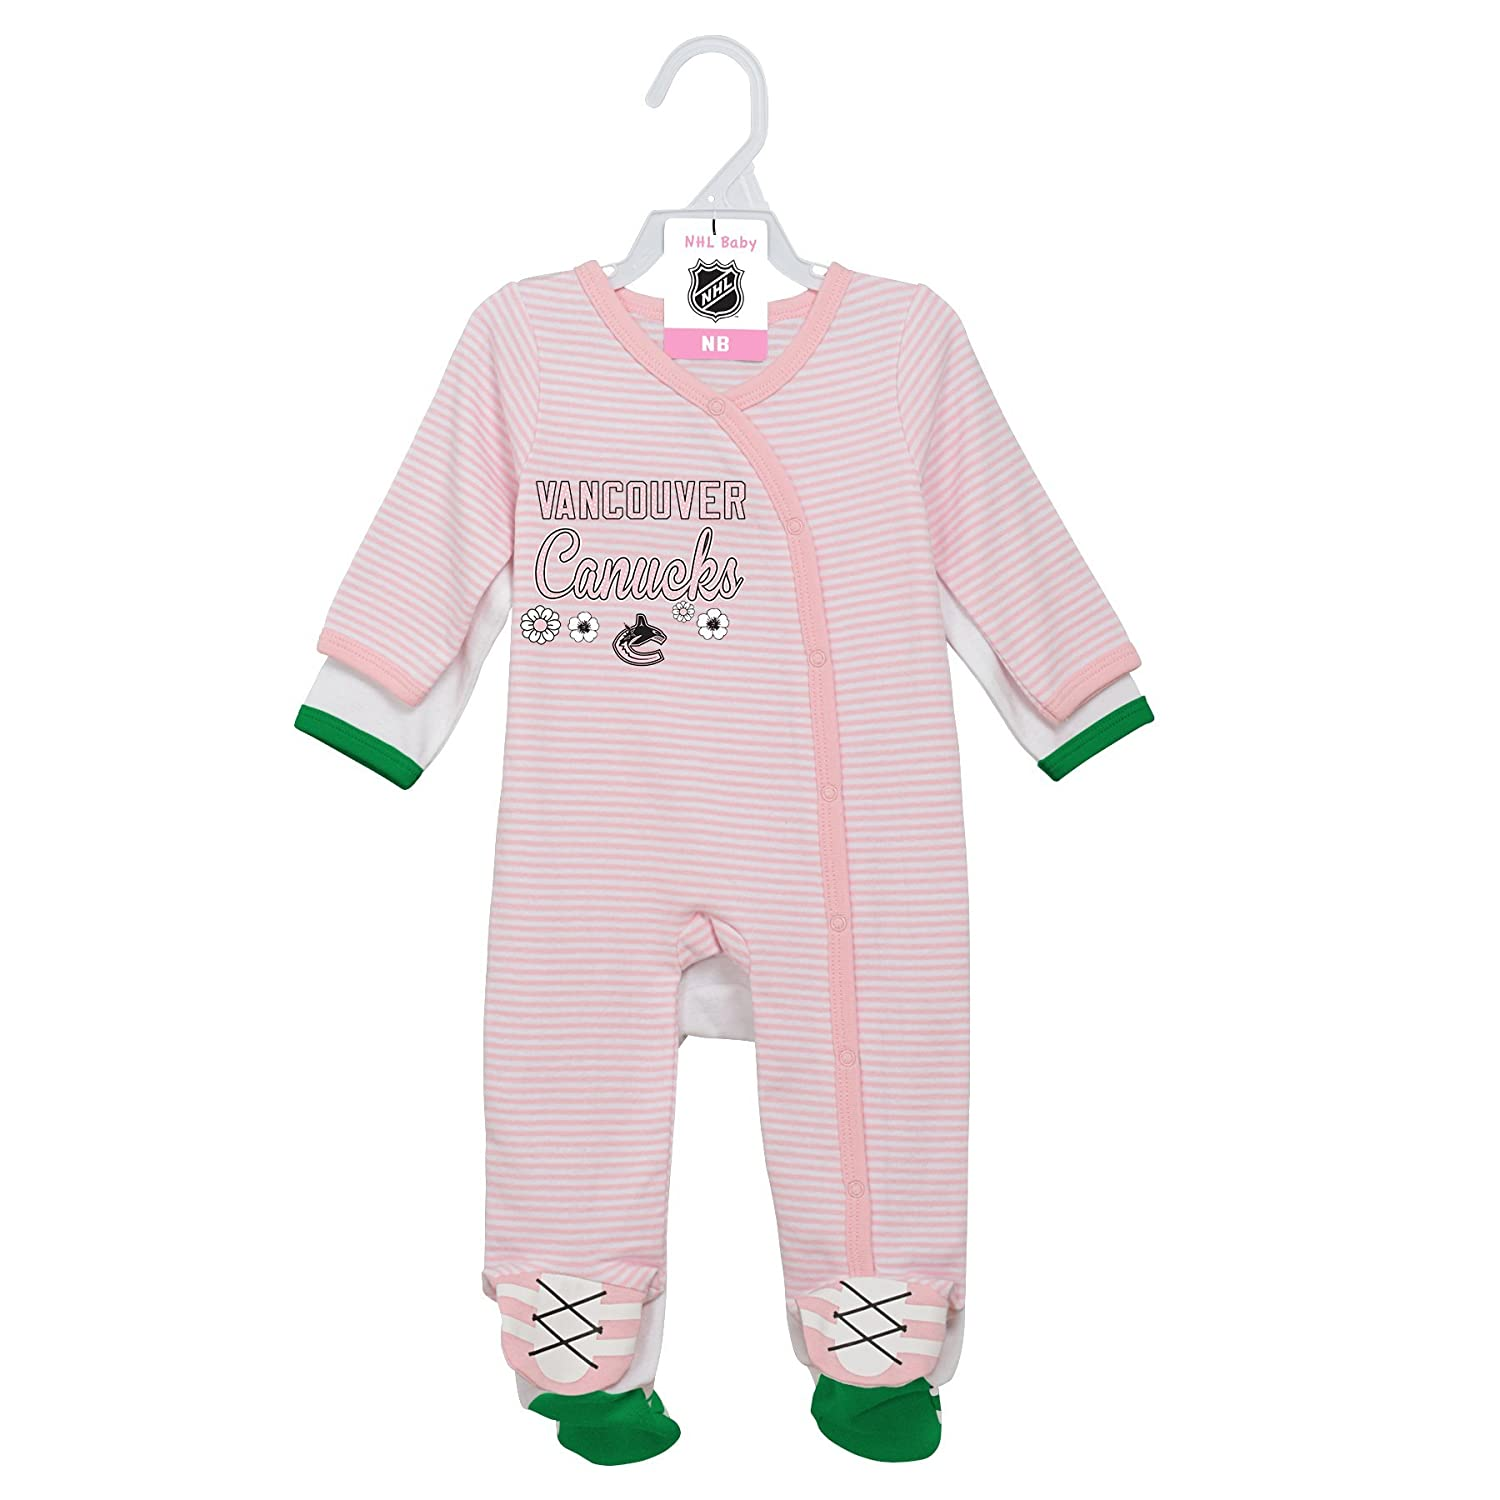 "NHL Layette新生児"" 2nd半分"" 2pieceカバーオールセット B075Y5W5QP  6-9 Months 6-9 Months